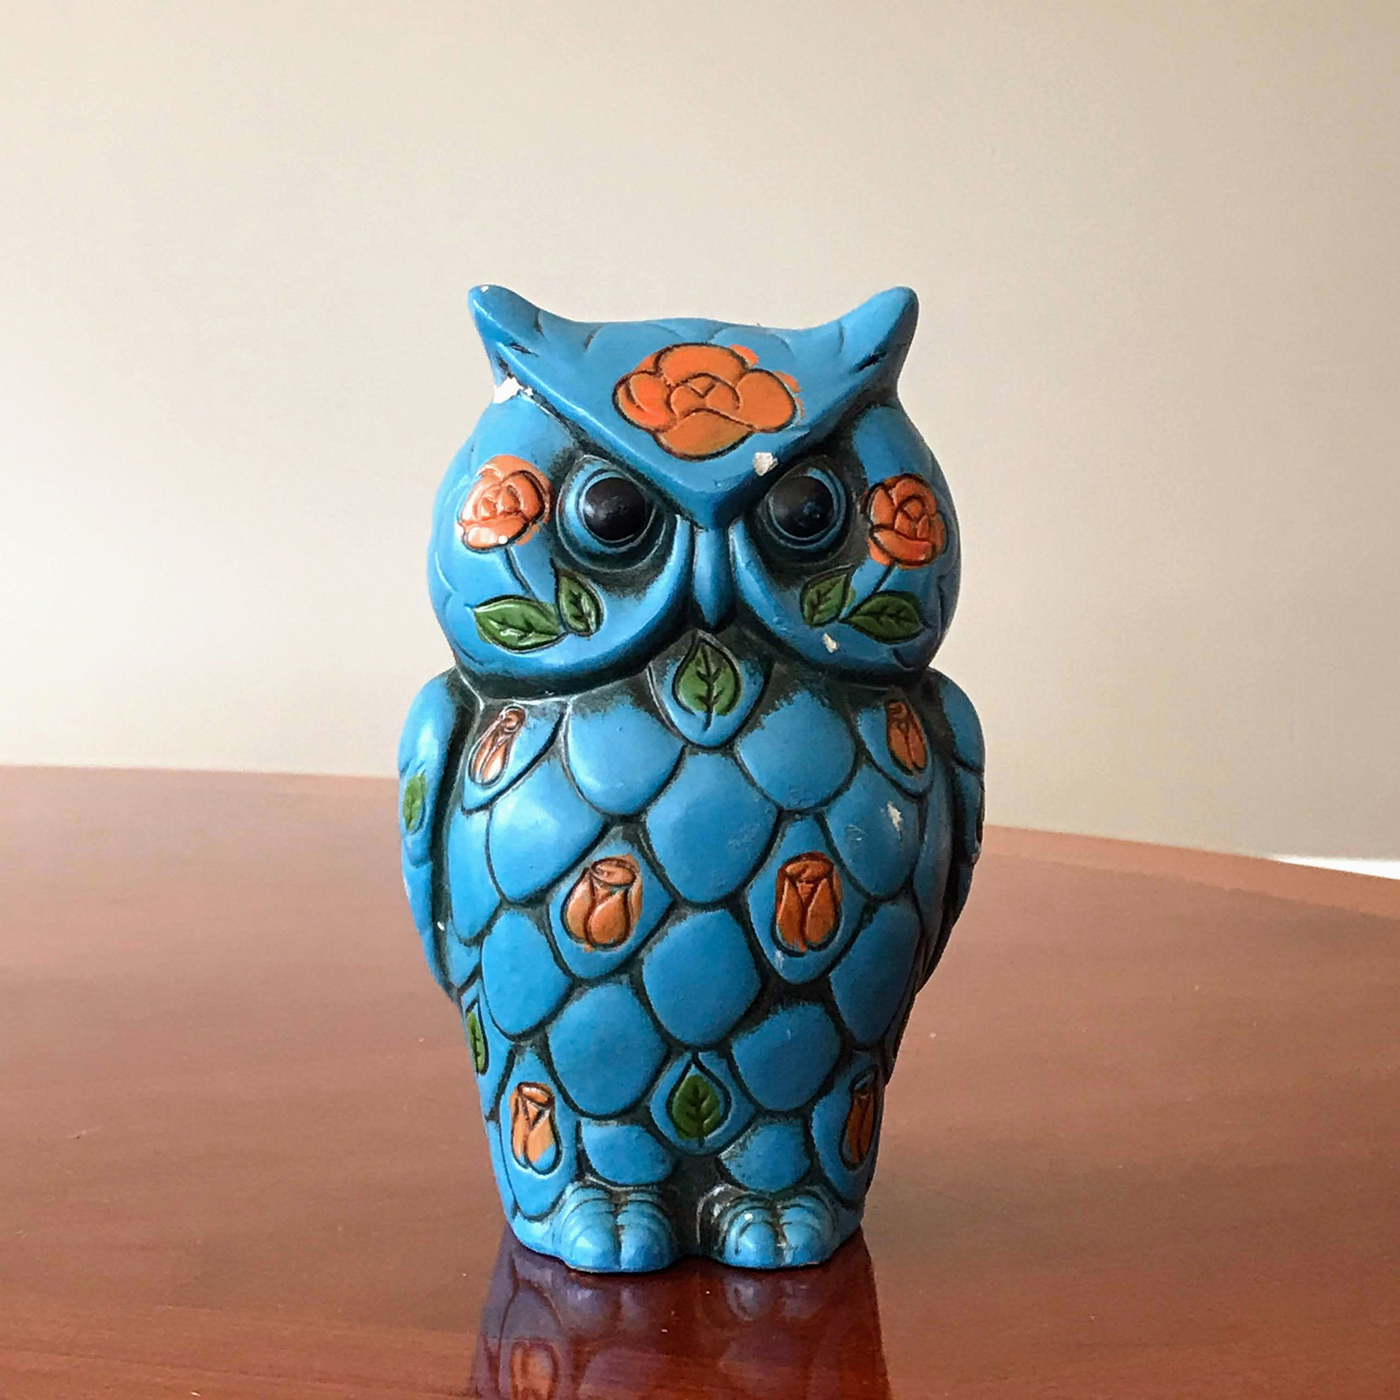 Cute And Quirky Owl Decor You Ll Want To Take Home Flea Market Finds Home And Garden Decorating Ideas By Expert Interior Decorators